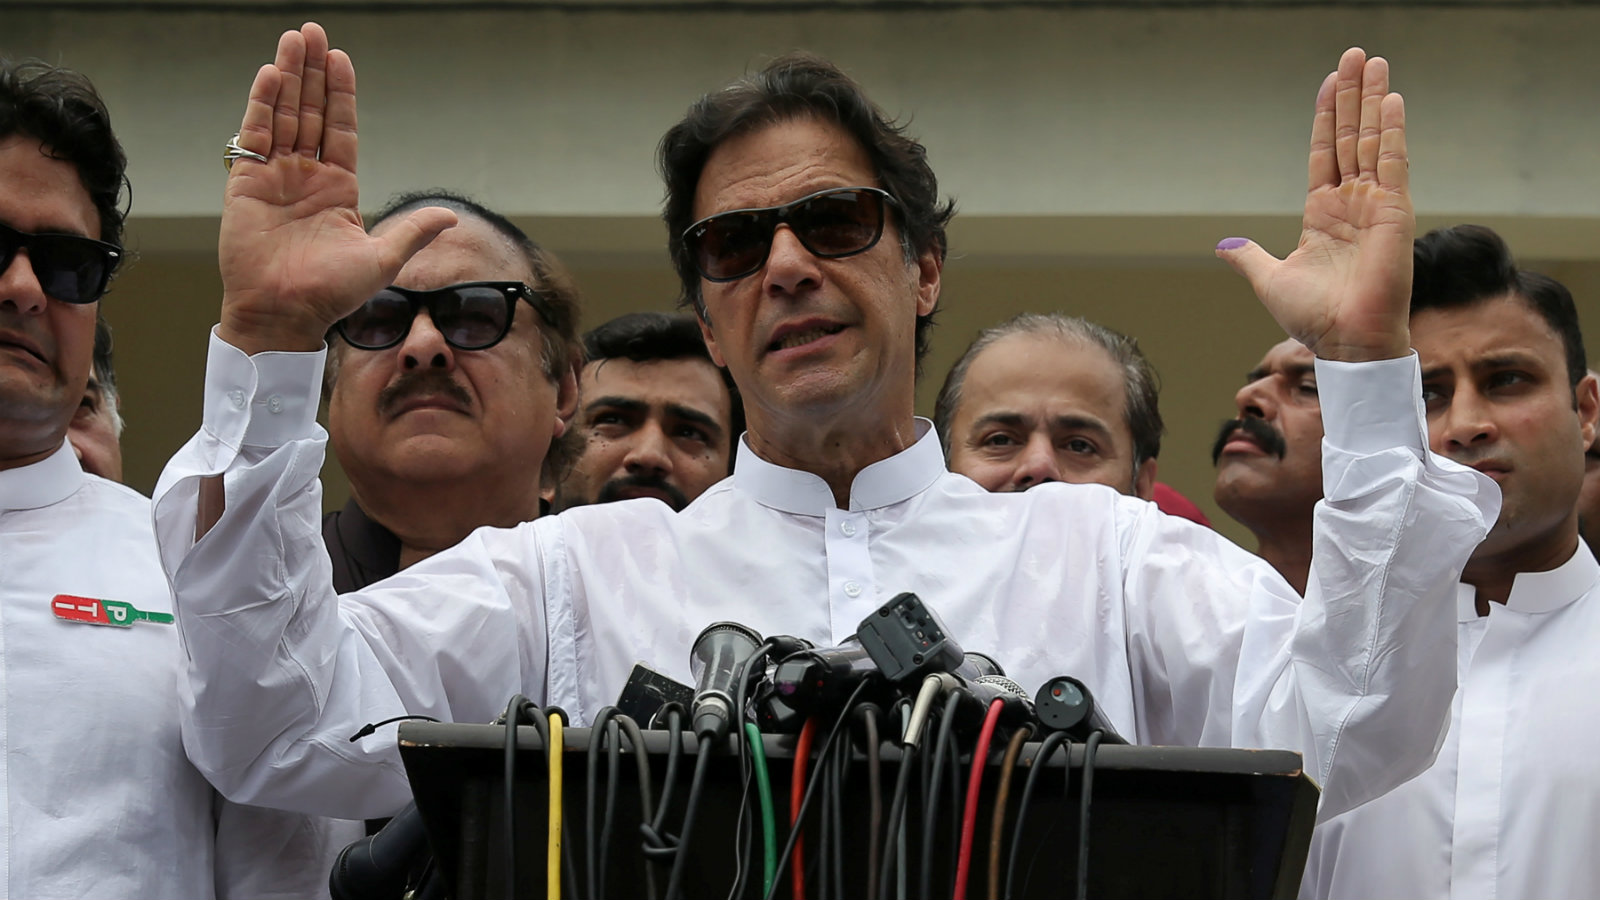 Cricket star-turned-politician Imran Khan, chairman of Pakistan Tehreek-e-Insaf (PTI), speaks to members of media after casting his vote at a polling station during the general election in Islamabad on July 25.